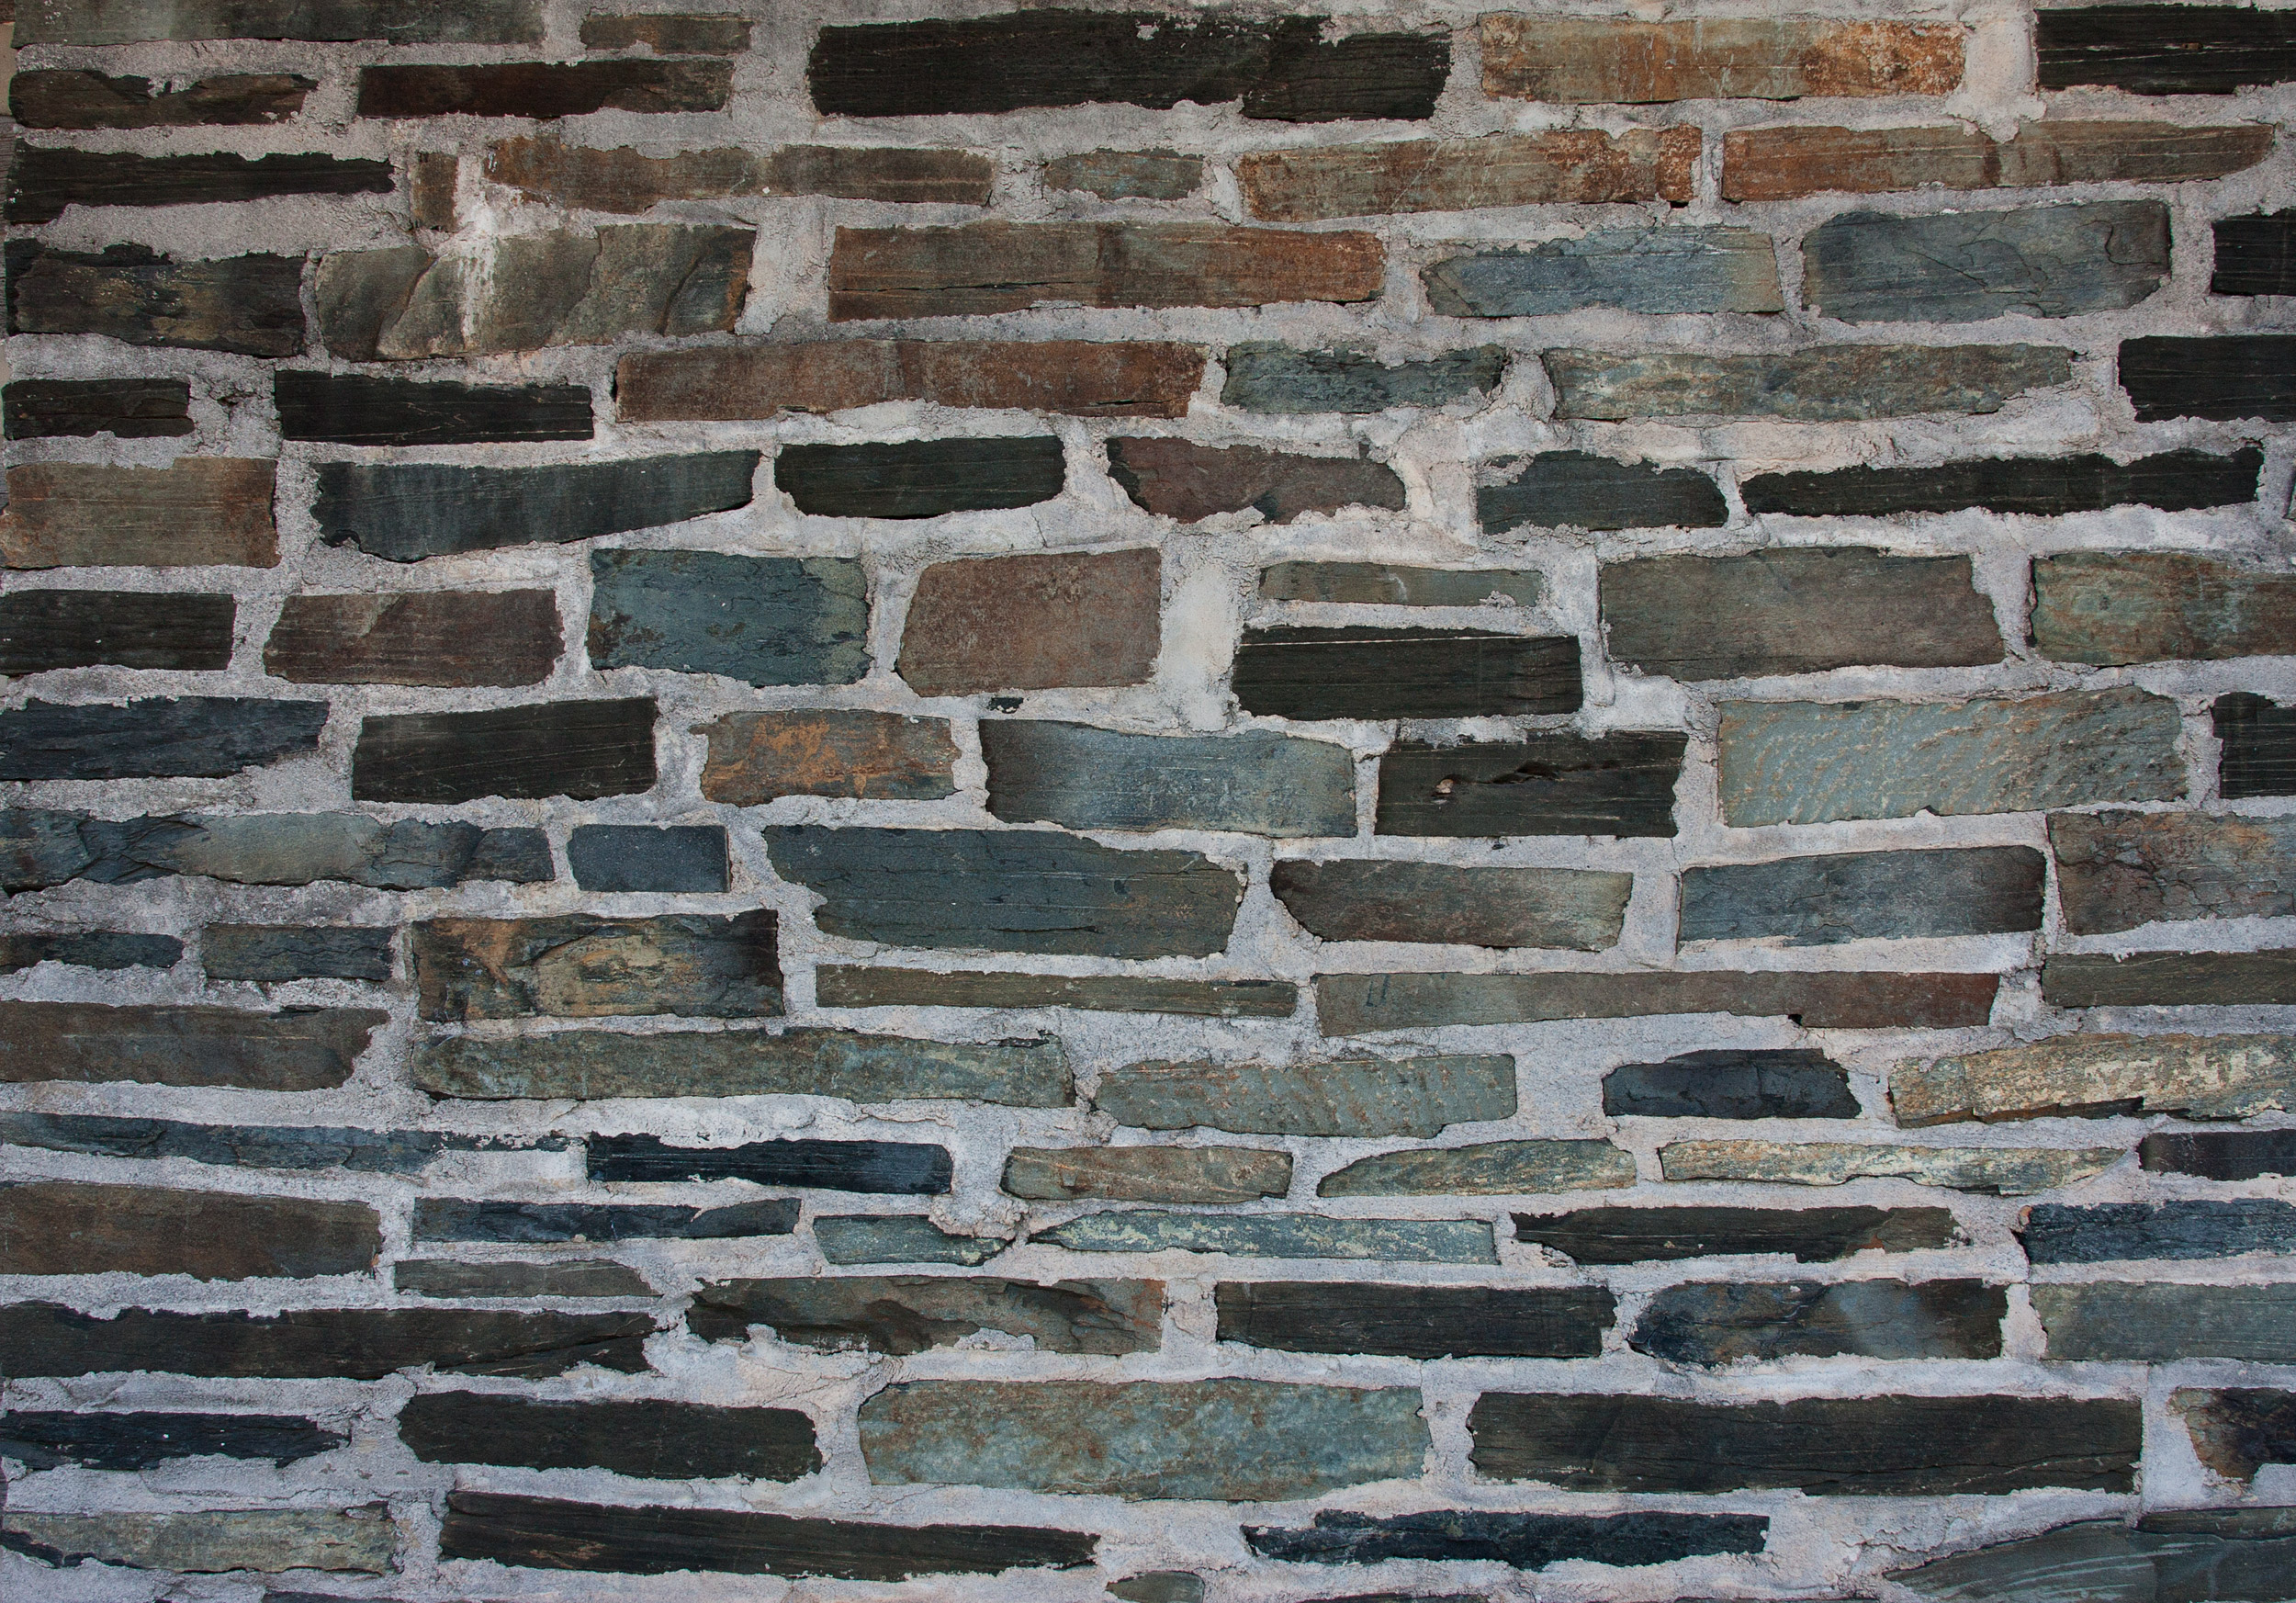 Stone Wall & Brick Wall Free Textures | High Resolution Textures